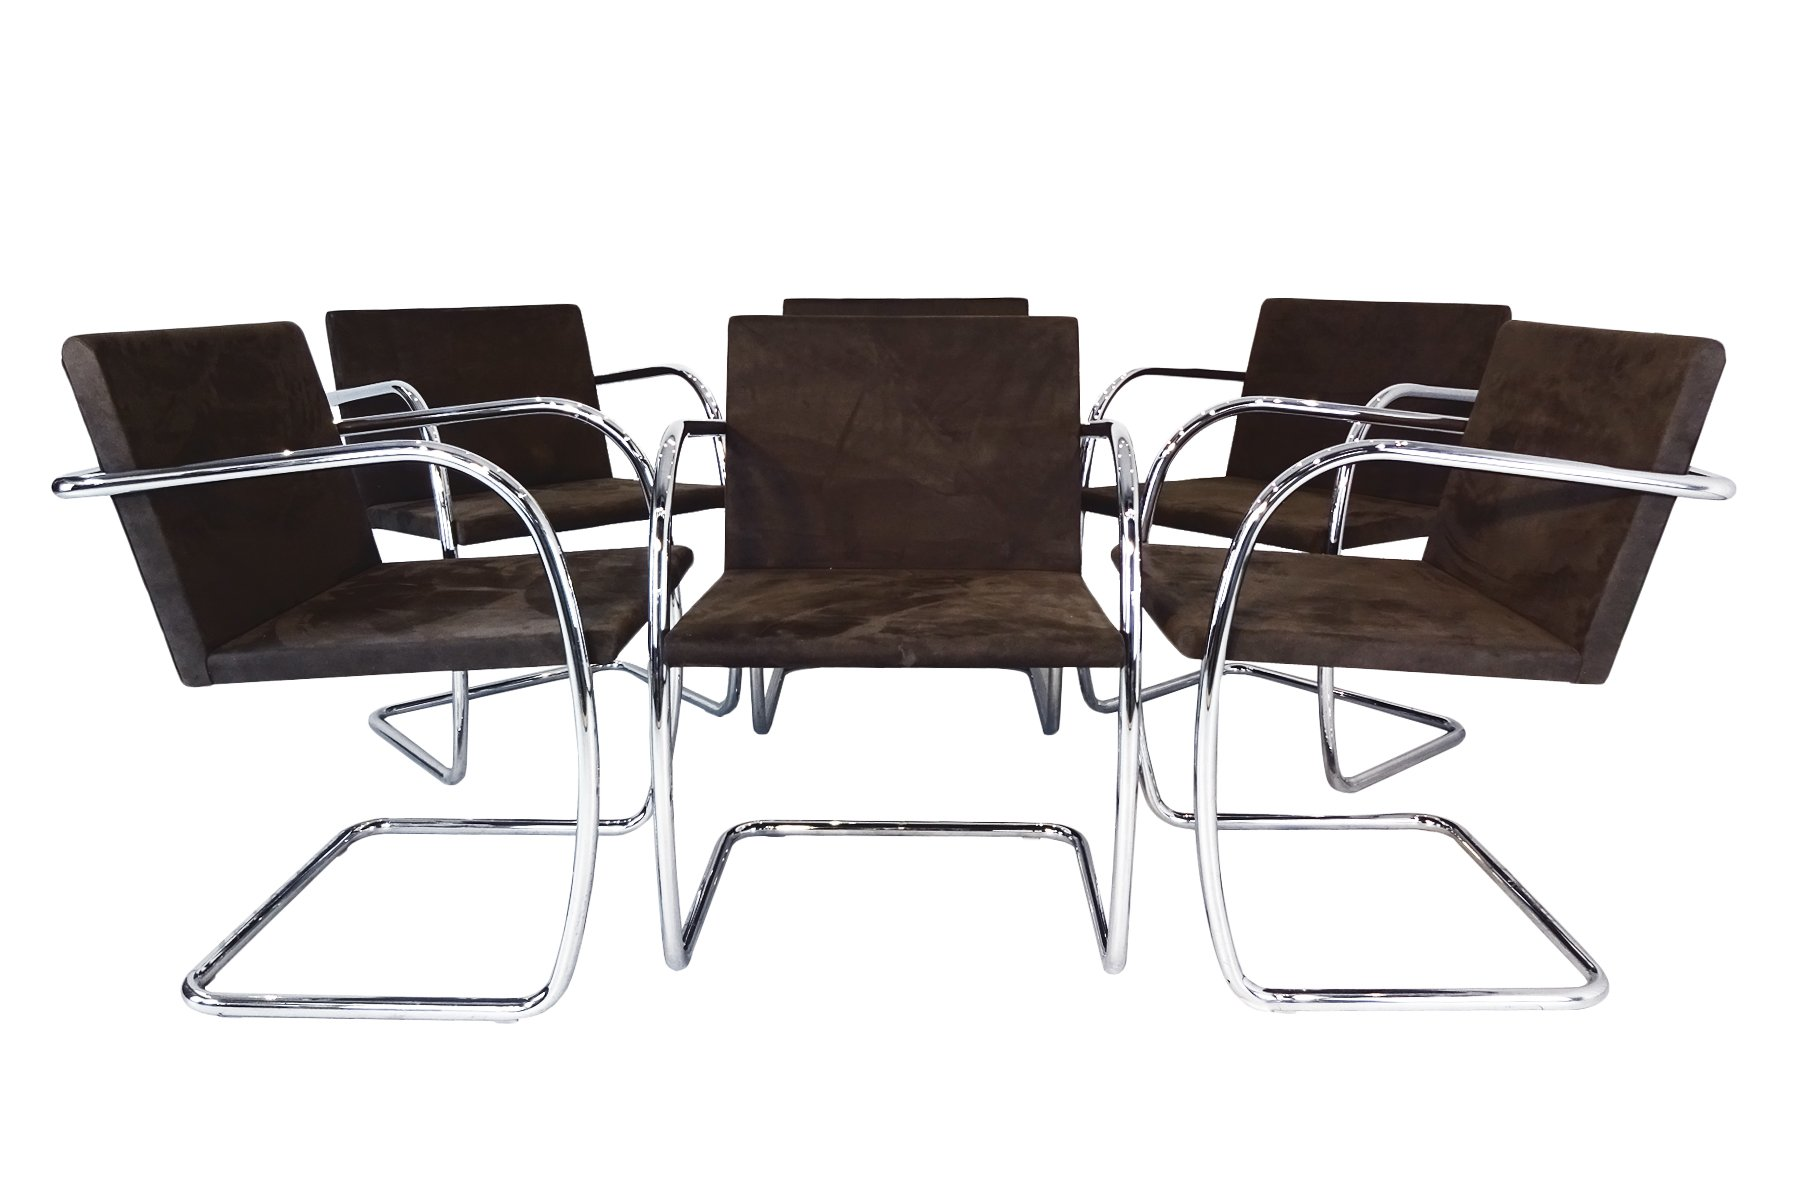 with der sofas van chair poltrona and bauhaus armchairs en design braccioli mies armchair rohe your armrests ibfor shop t